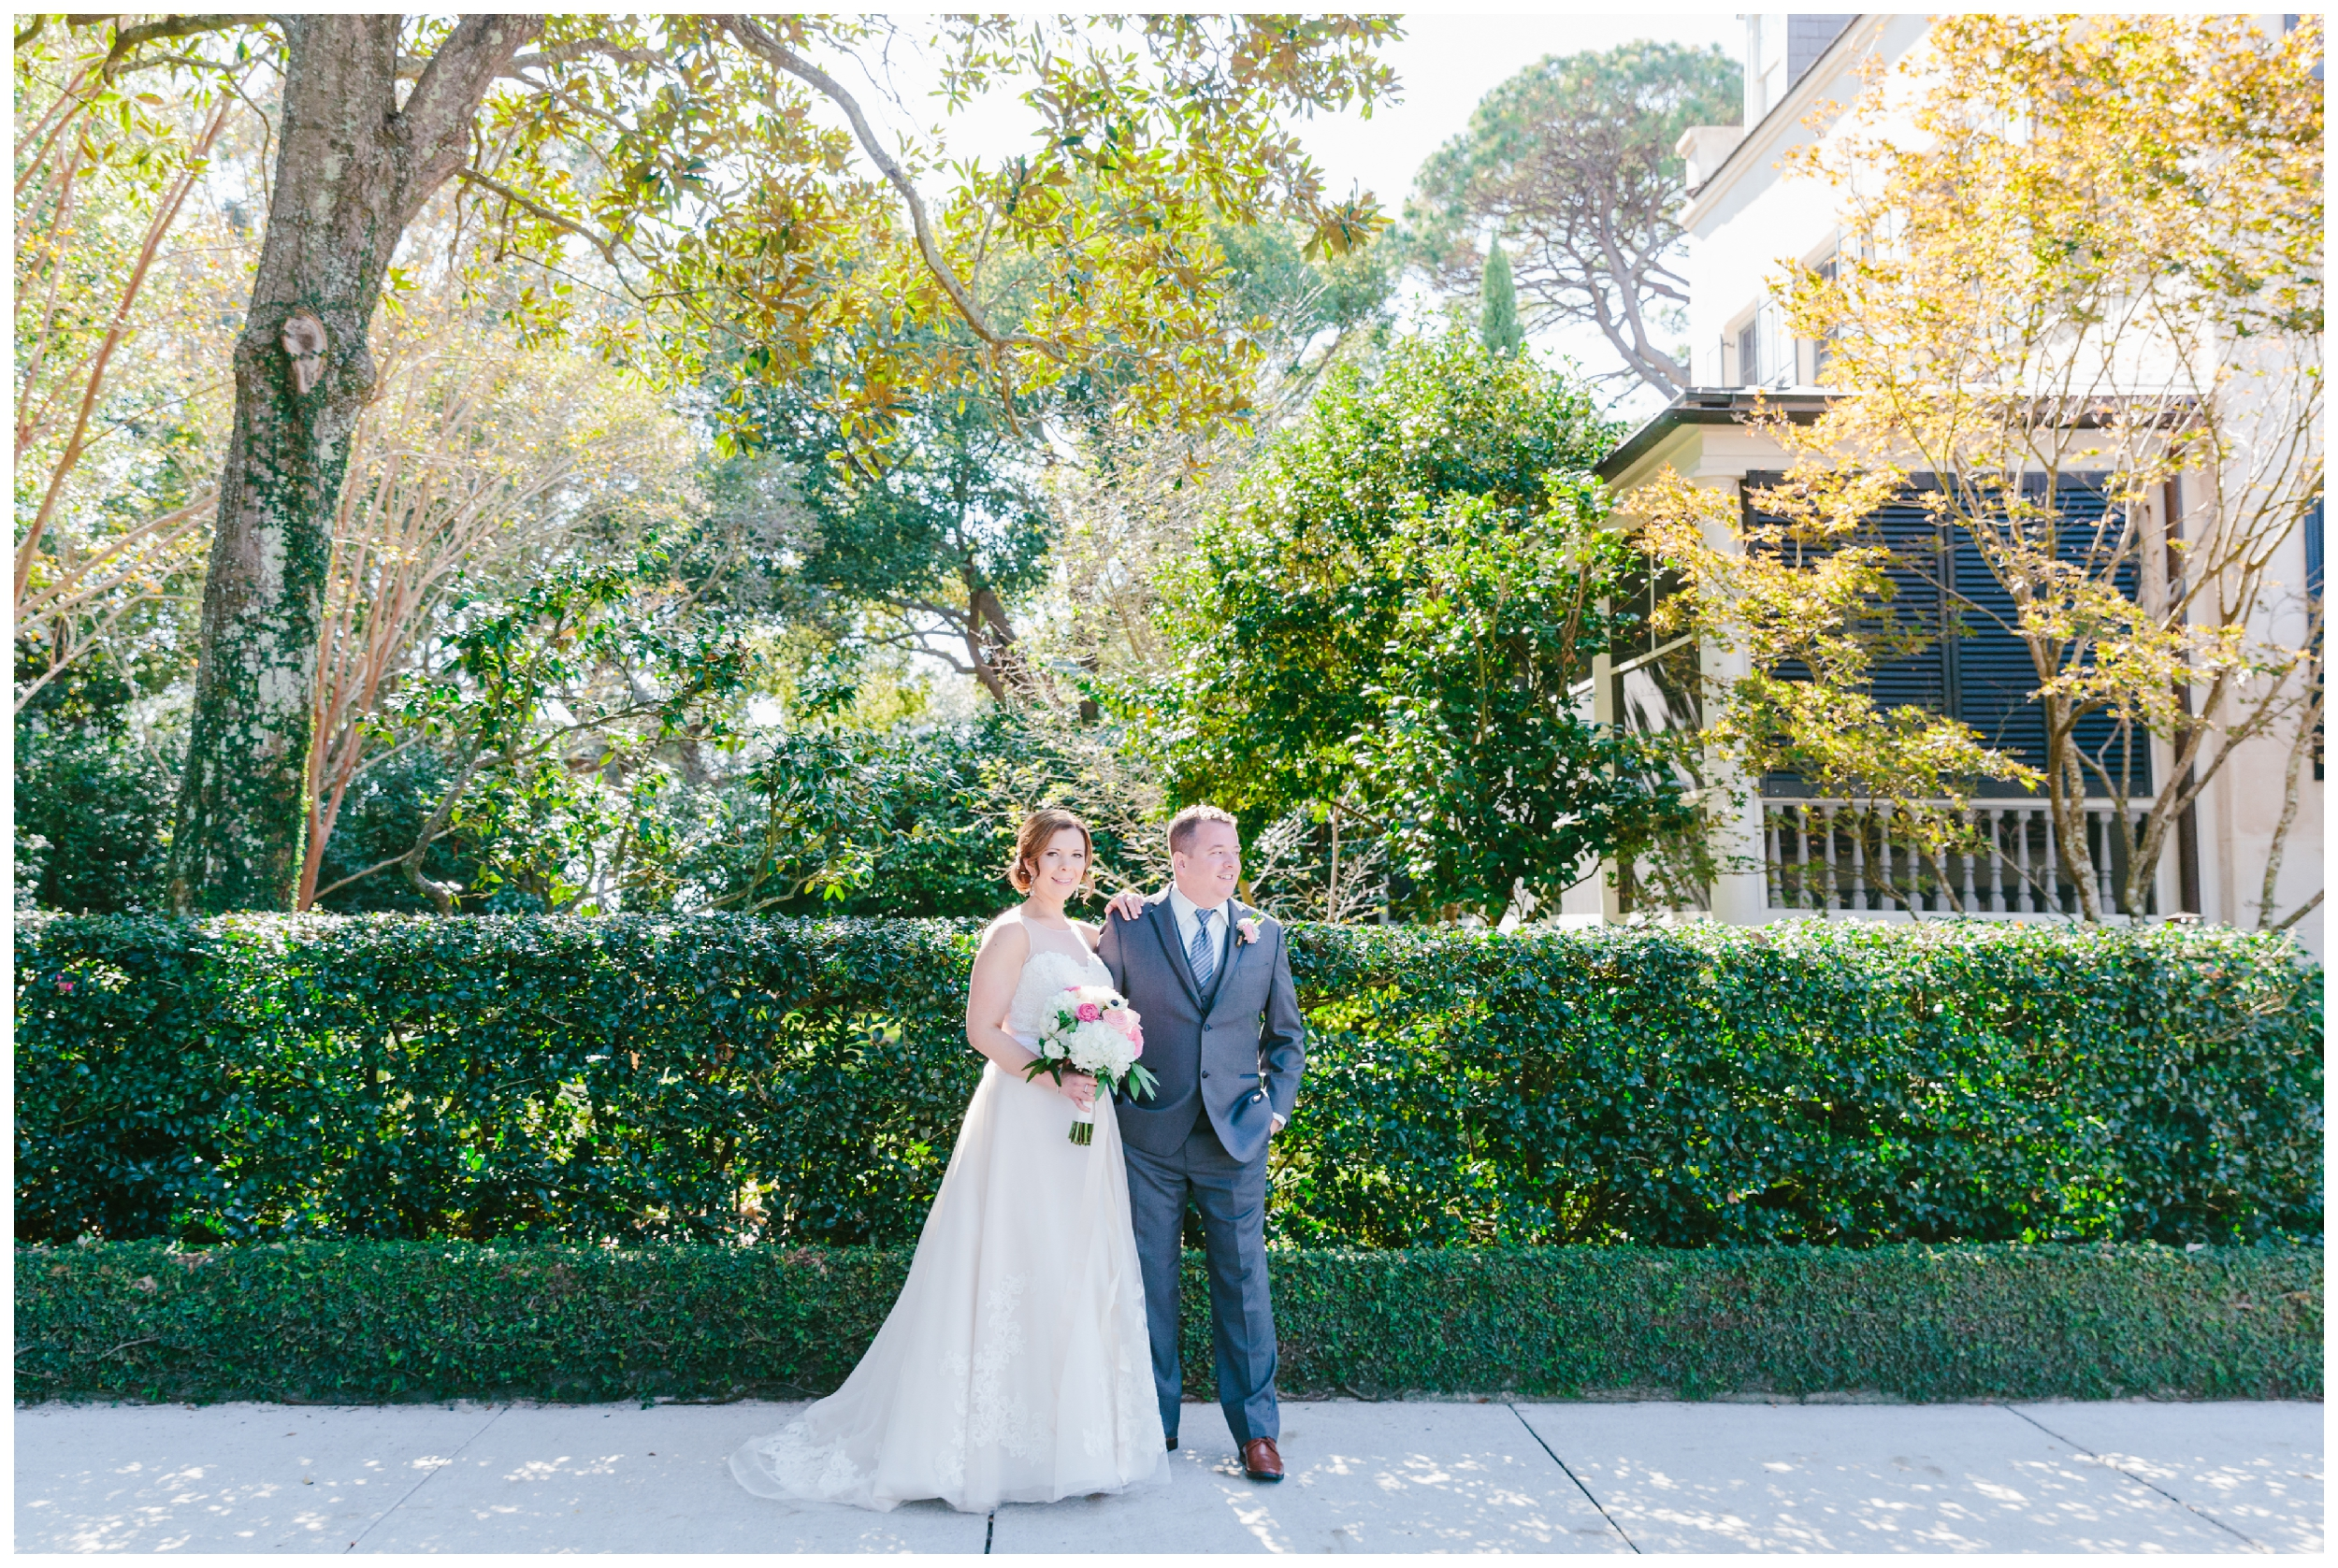 bride and groom portraits using the natural light filtered through the trees